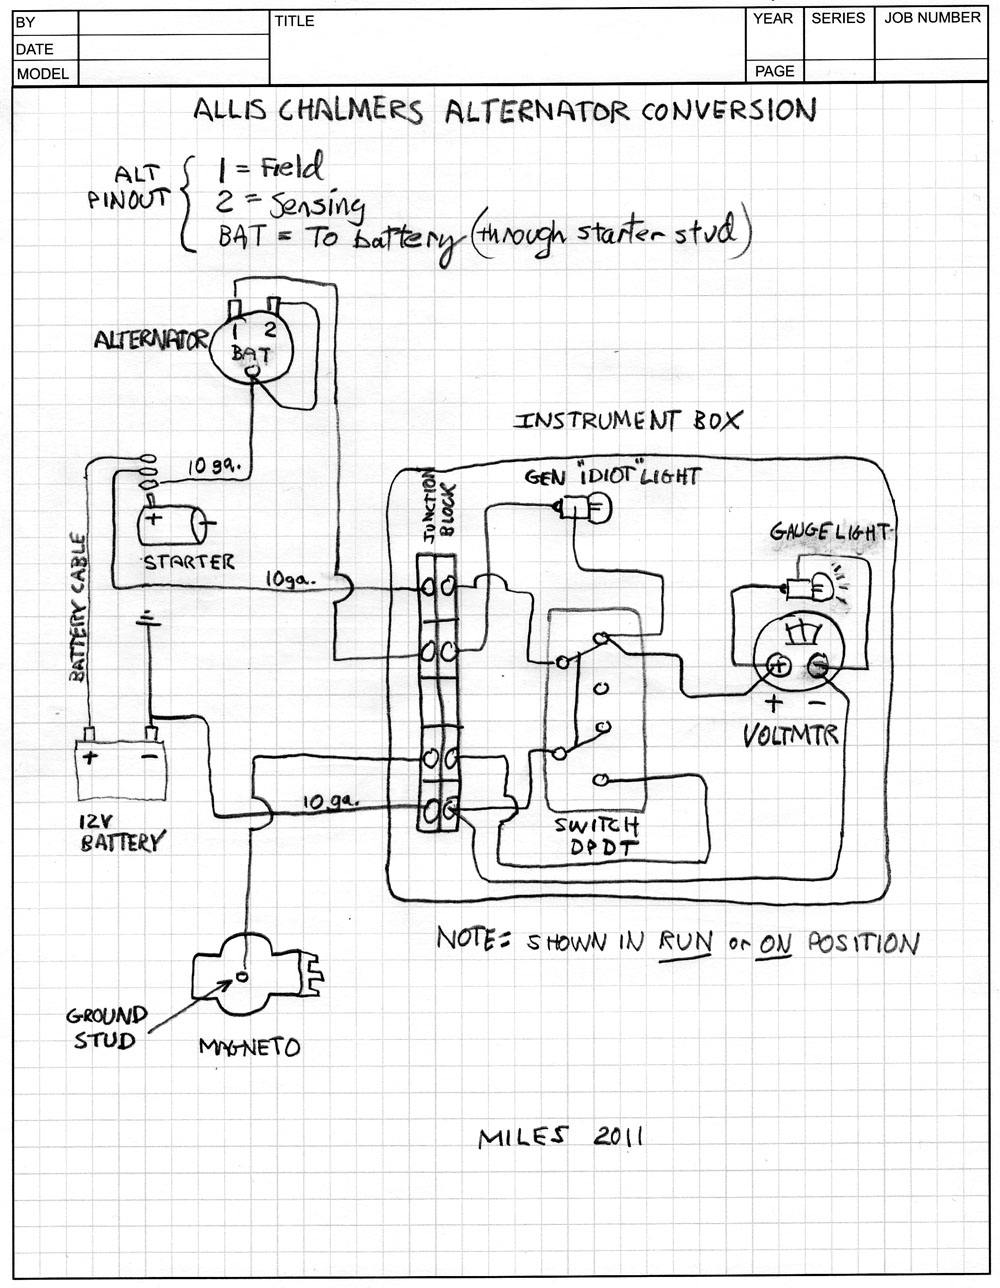 ... ACshematicjpg 12 volt conversion help! allischalmers forum allis  chalmers wd 12 volt wiring diagram at